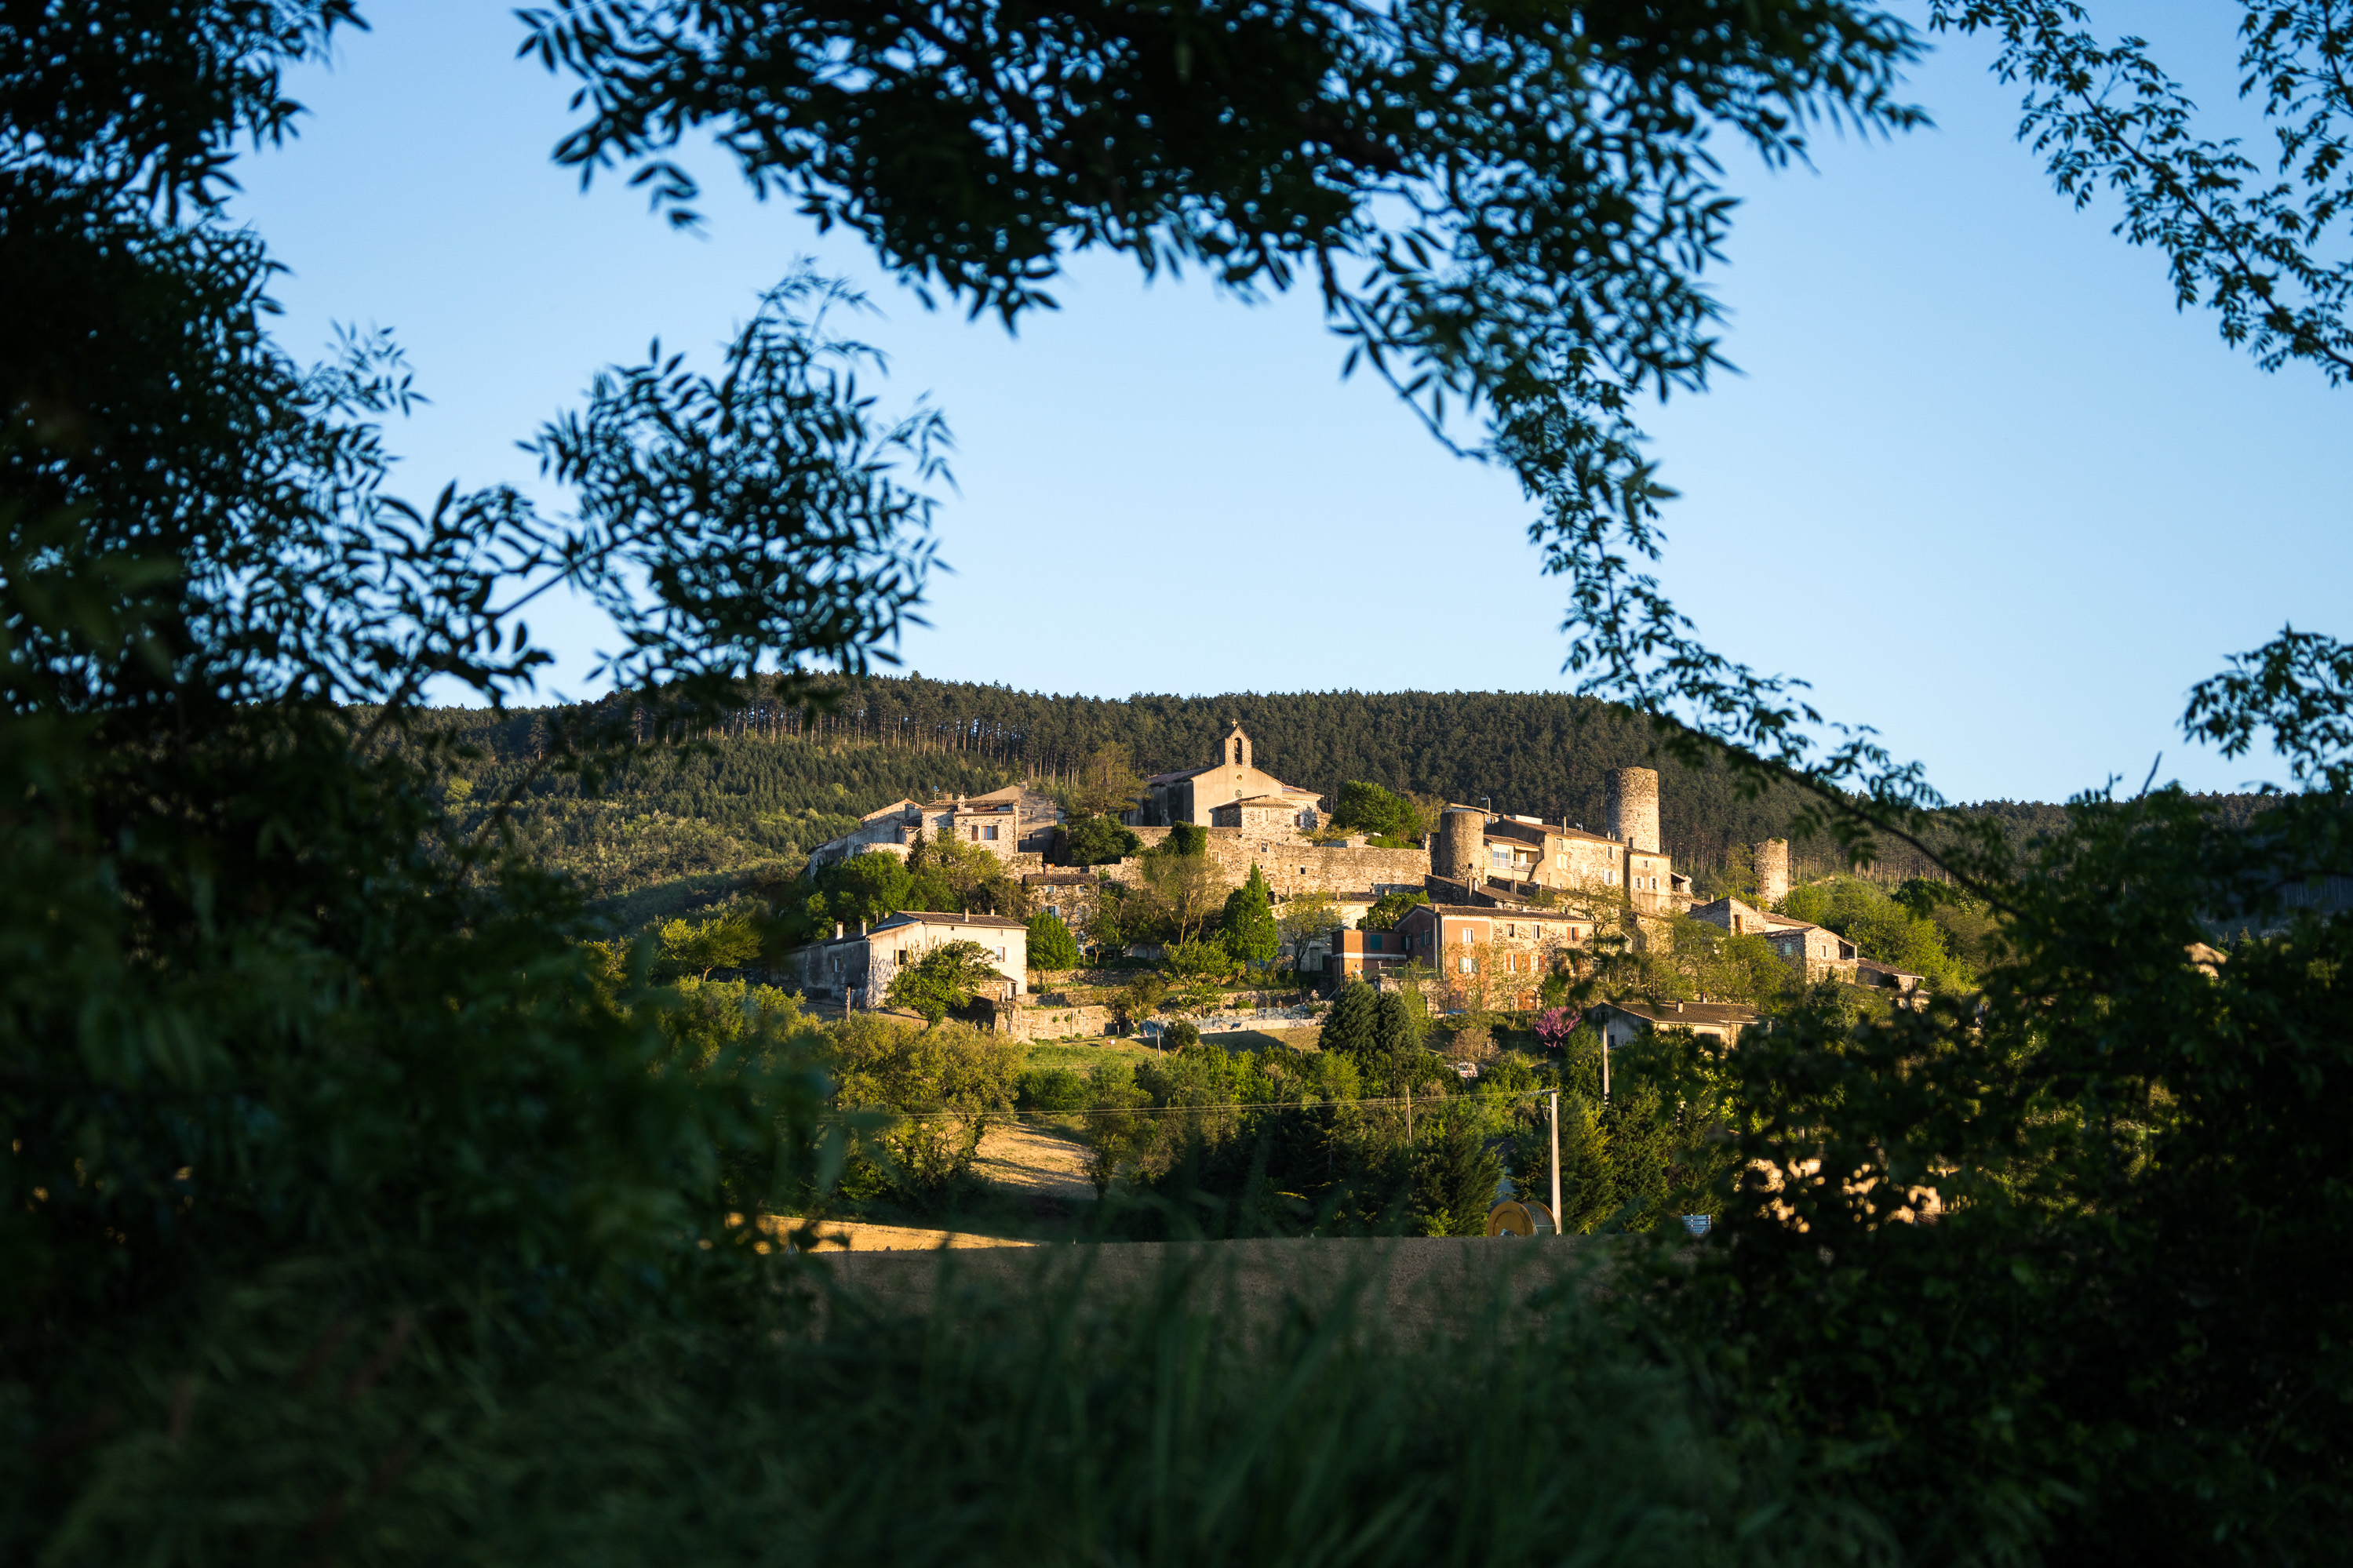 Village de Saint-Vincent-de-Barrés